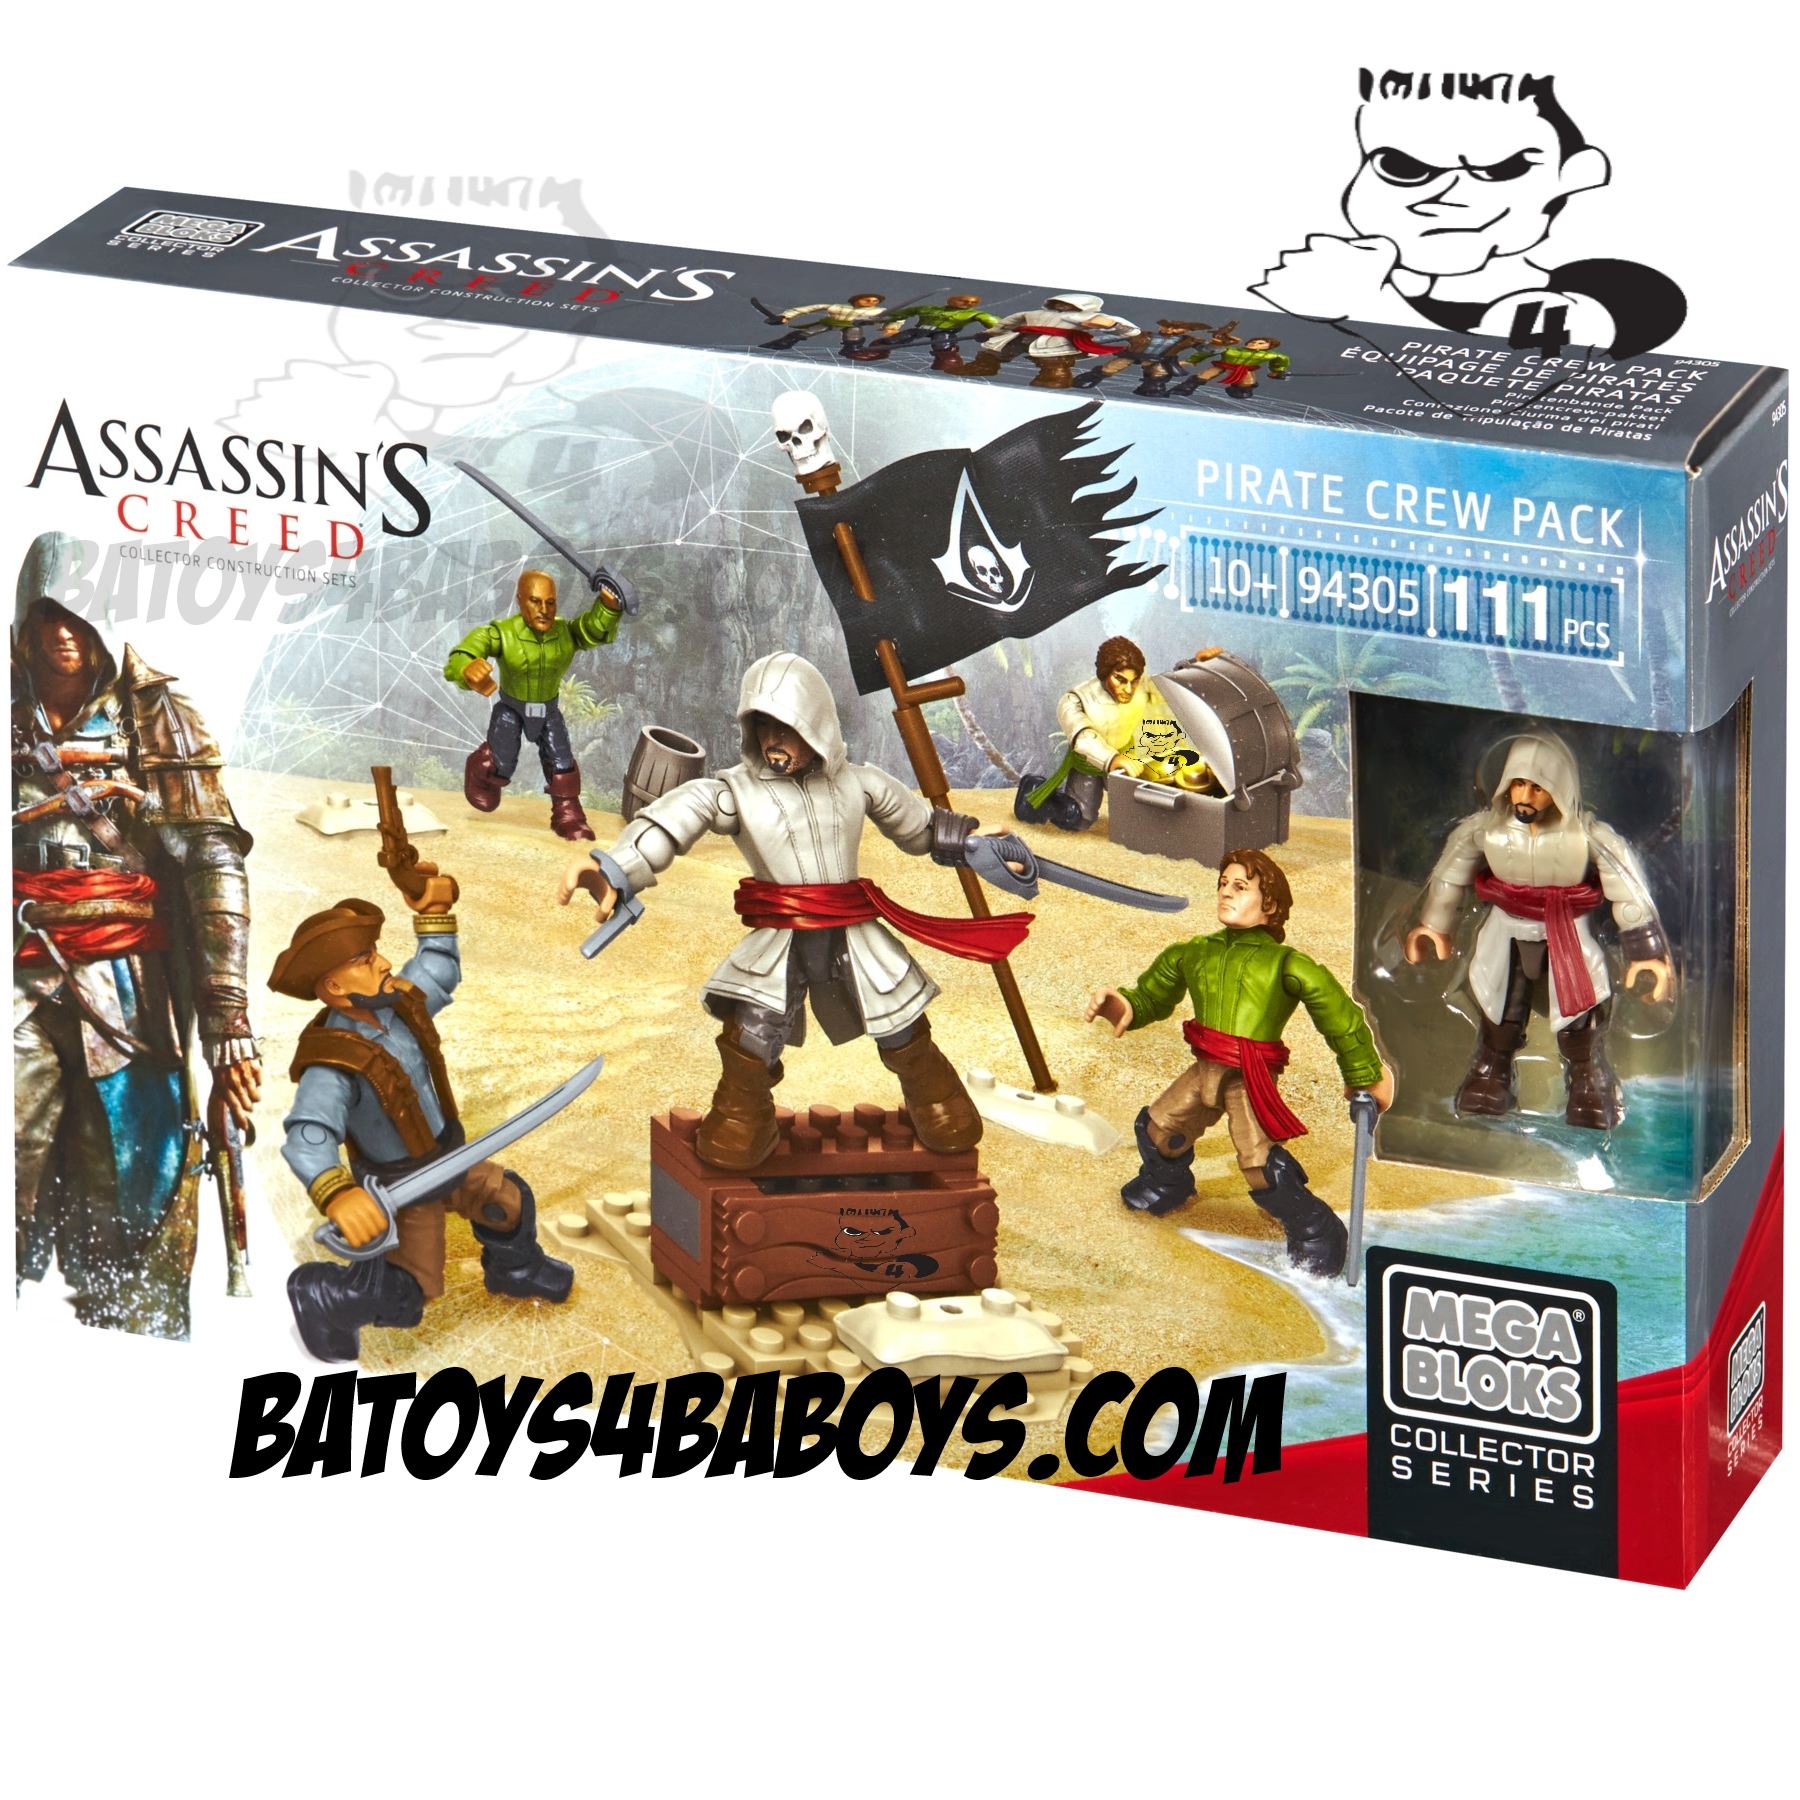 2014 Mega Bloks Assassin's Creed Pirate Crew Pack